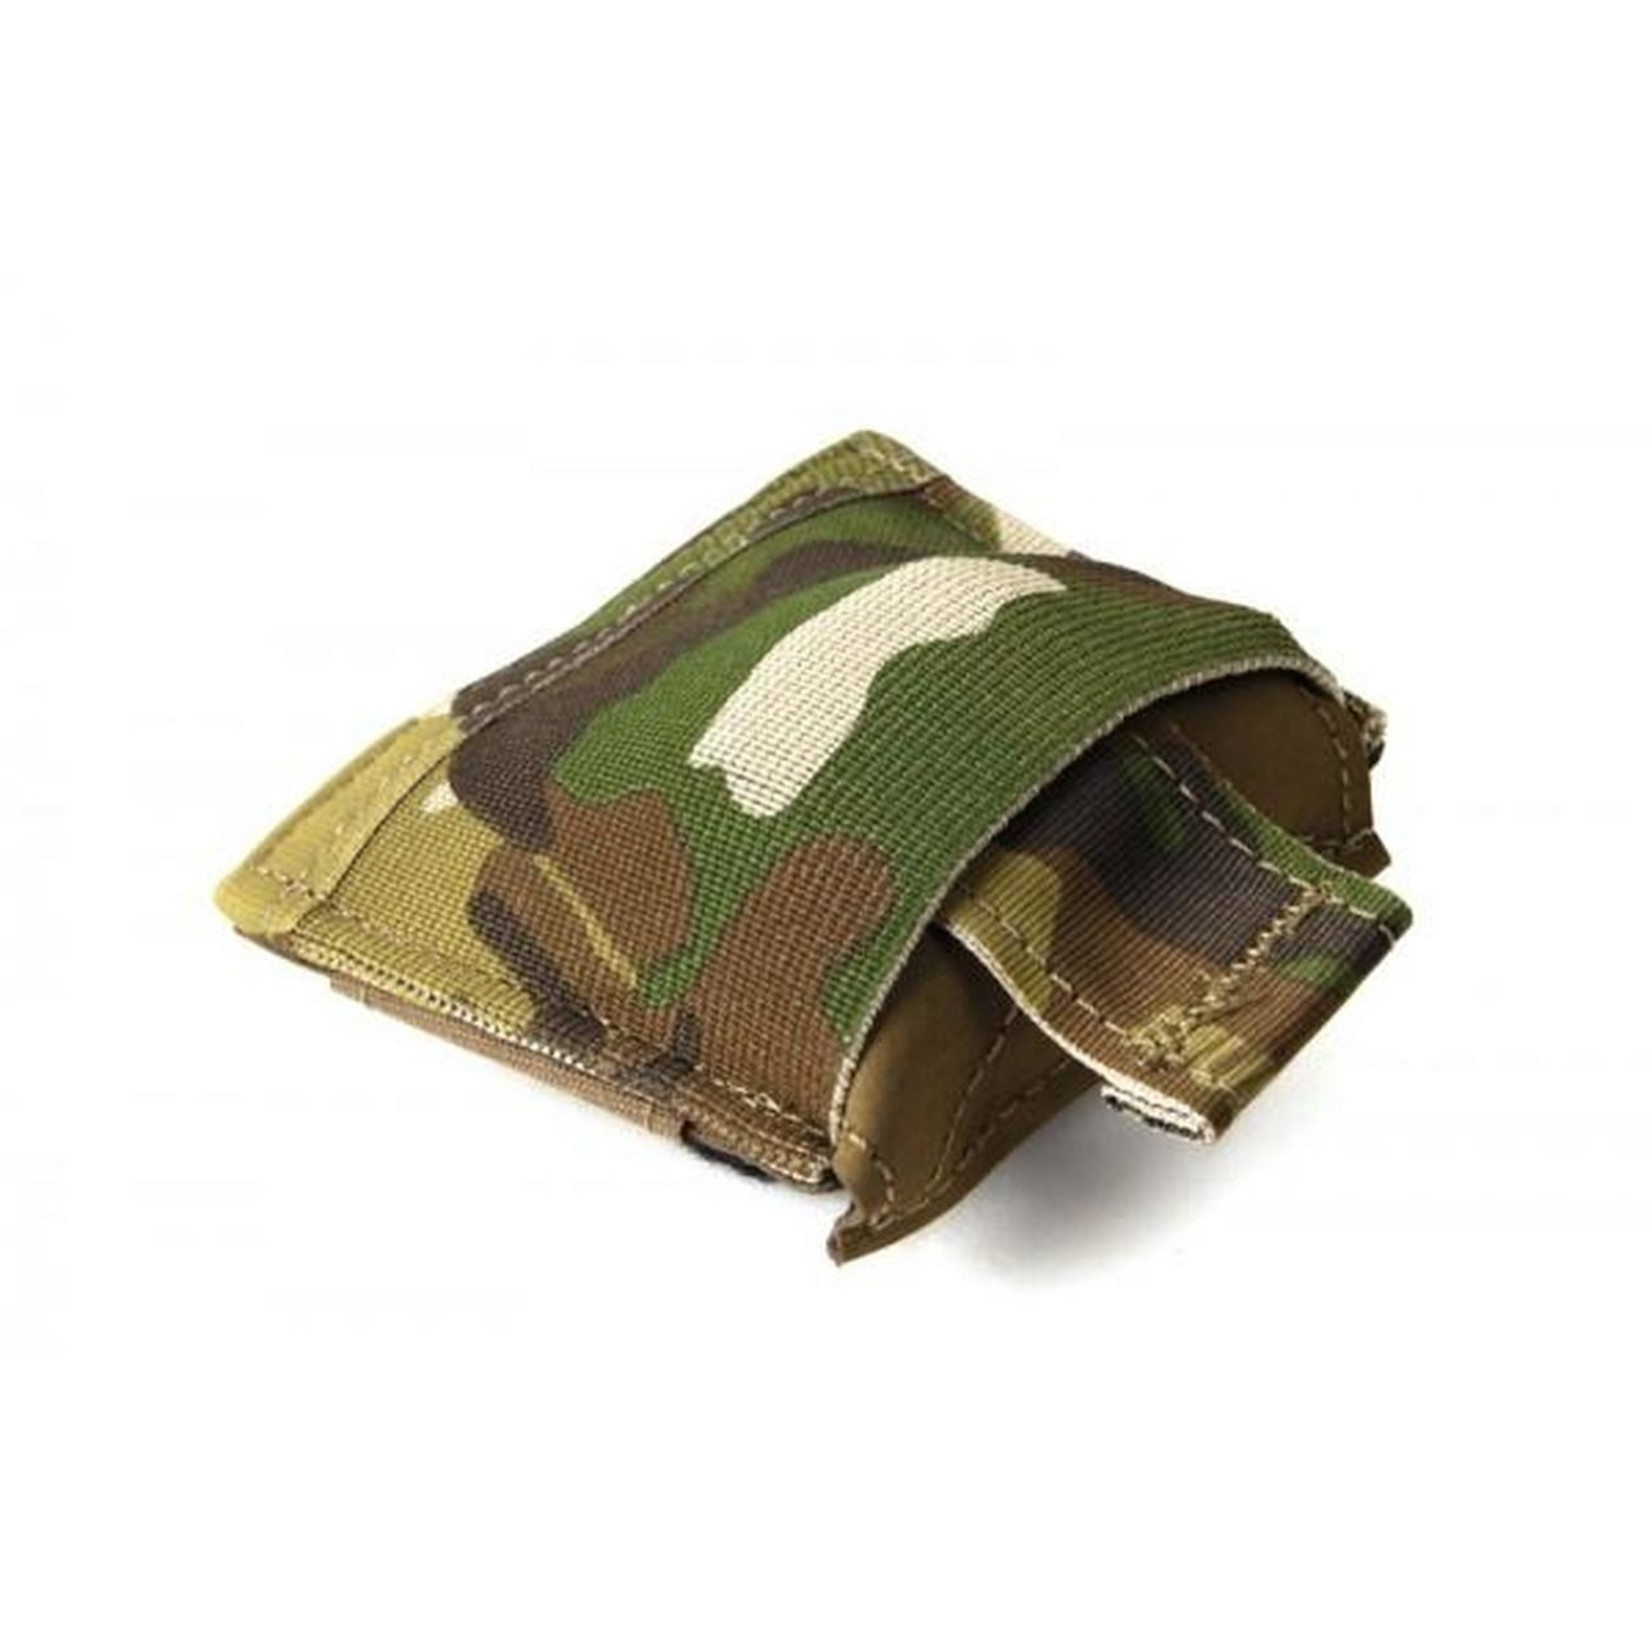 BLUE FORCE GEAR BELT MOUNTED DUMP POUCH